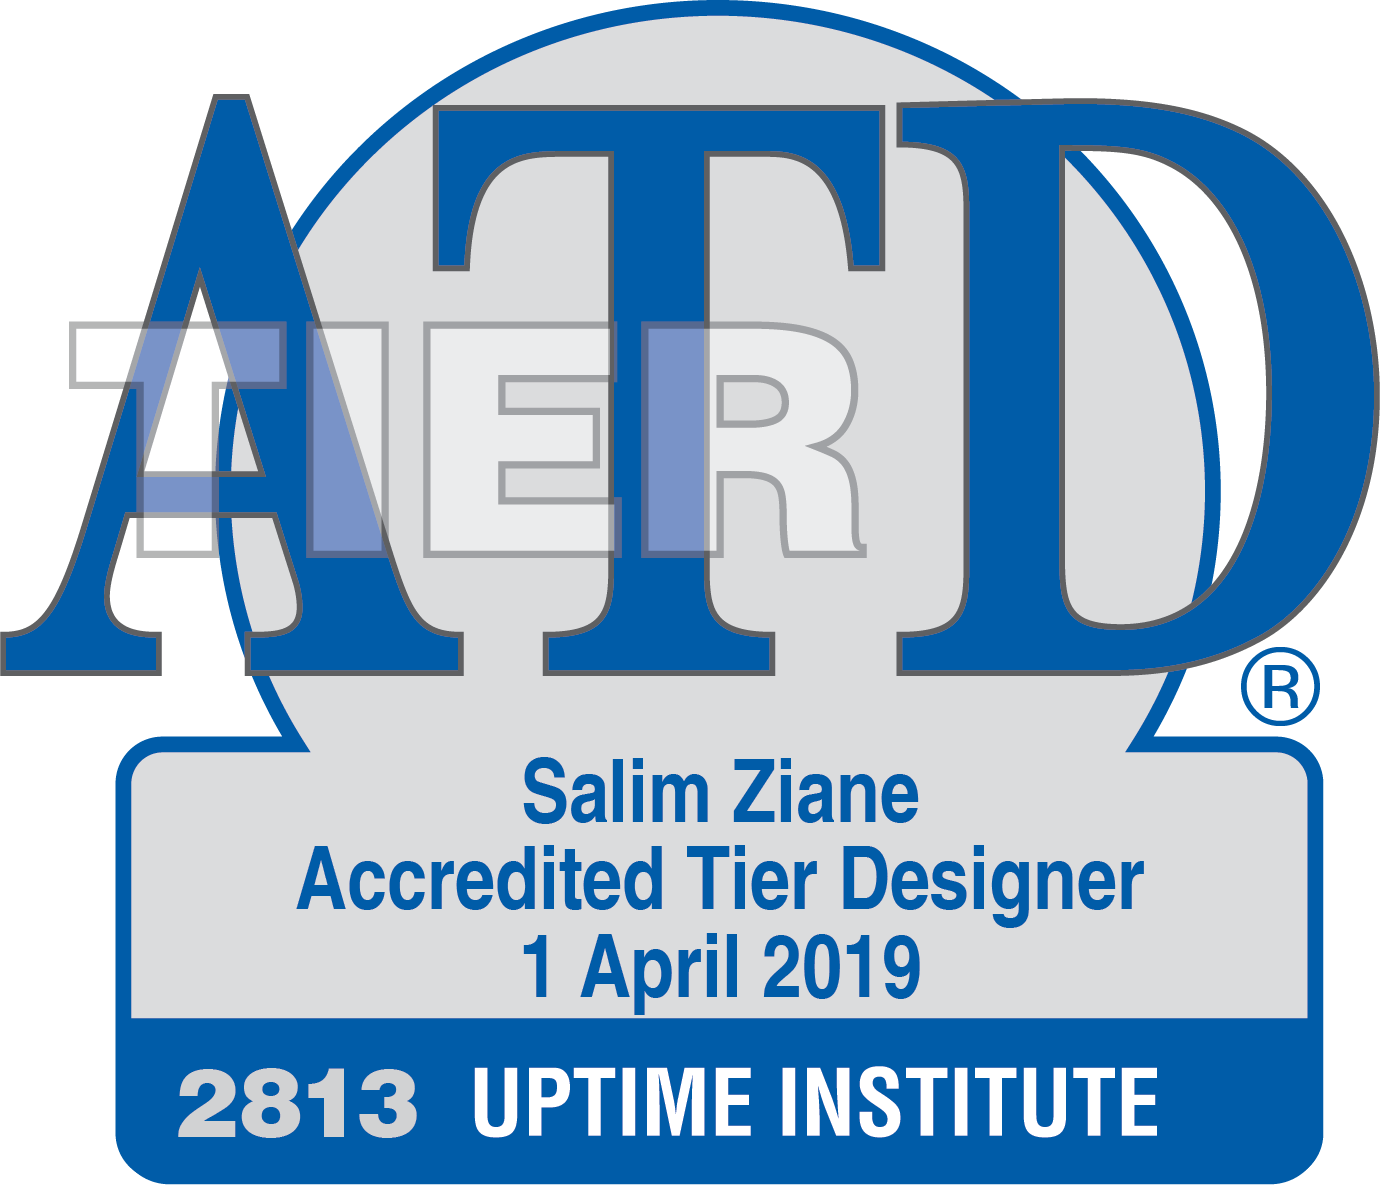 Accredited Tier Designer Roster - Uptime Institute LLC